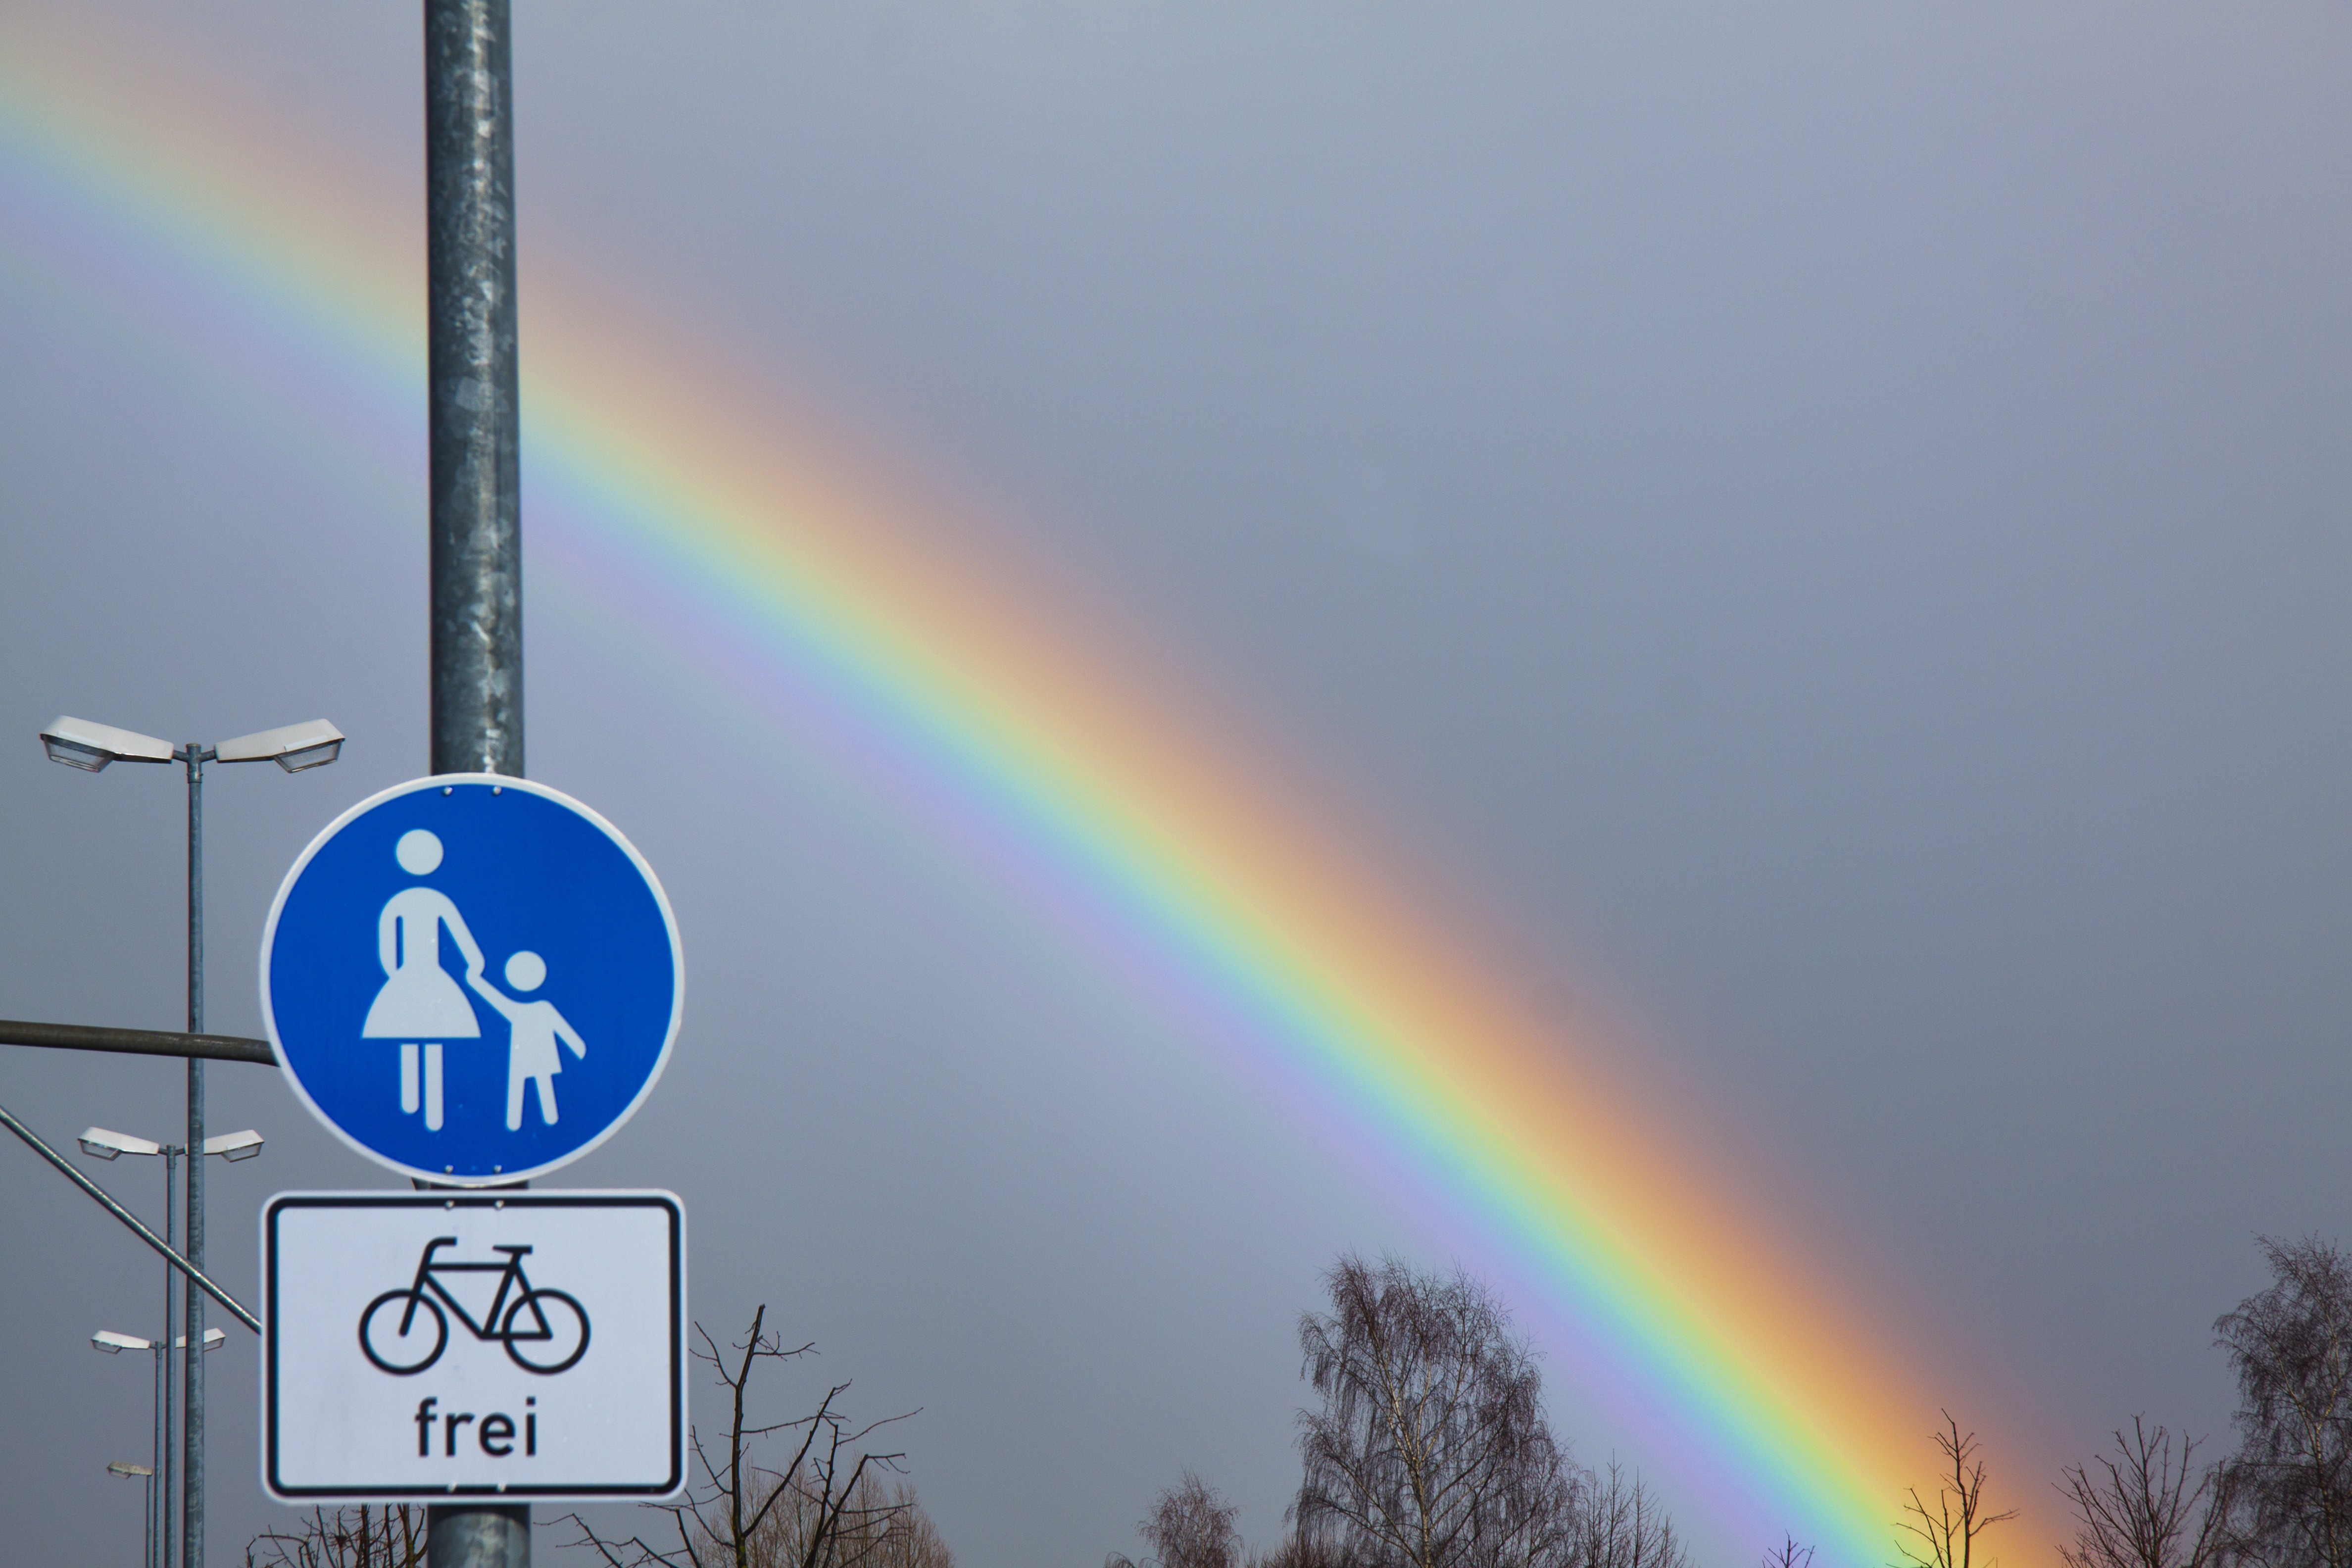 Colors of Nature, City, Color, Colorful, Rainbow, HQ Photo